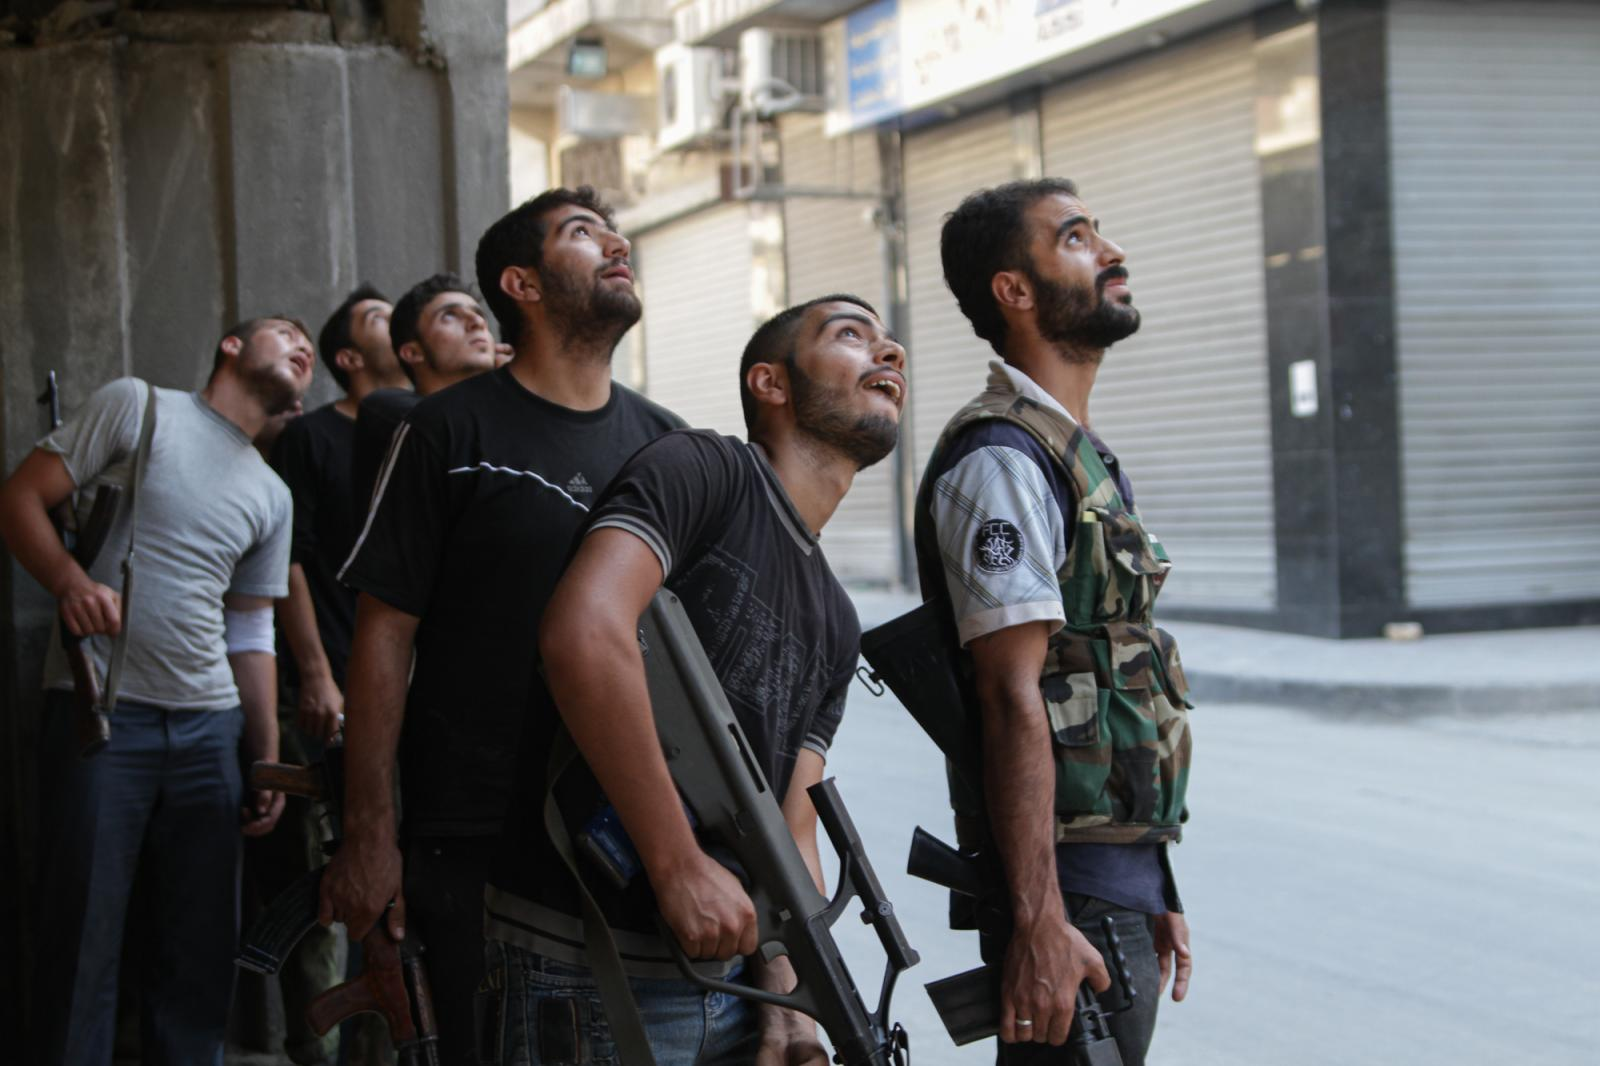 The Free Syrian Army hide underneath a highway in a neighborhood in Aleppo on August 21, 2012 as Assad's forces fly above trying to target certain areas that are FSA strongholds.